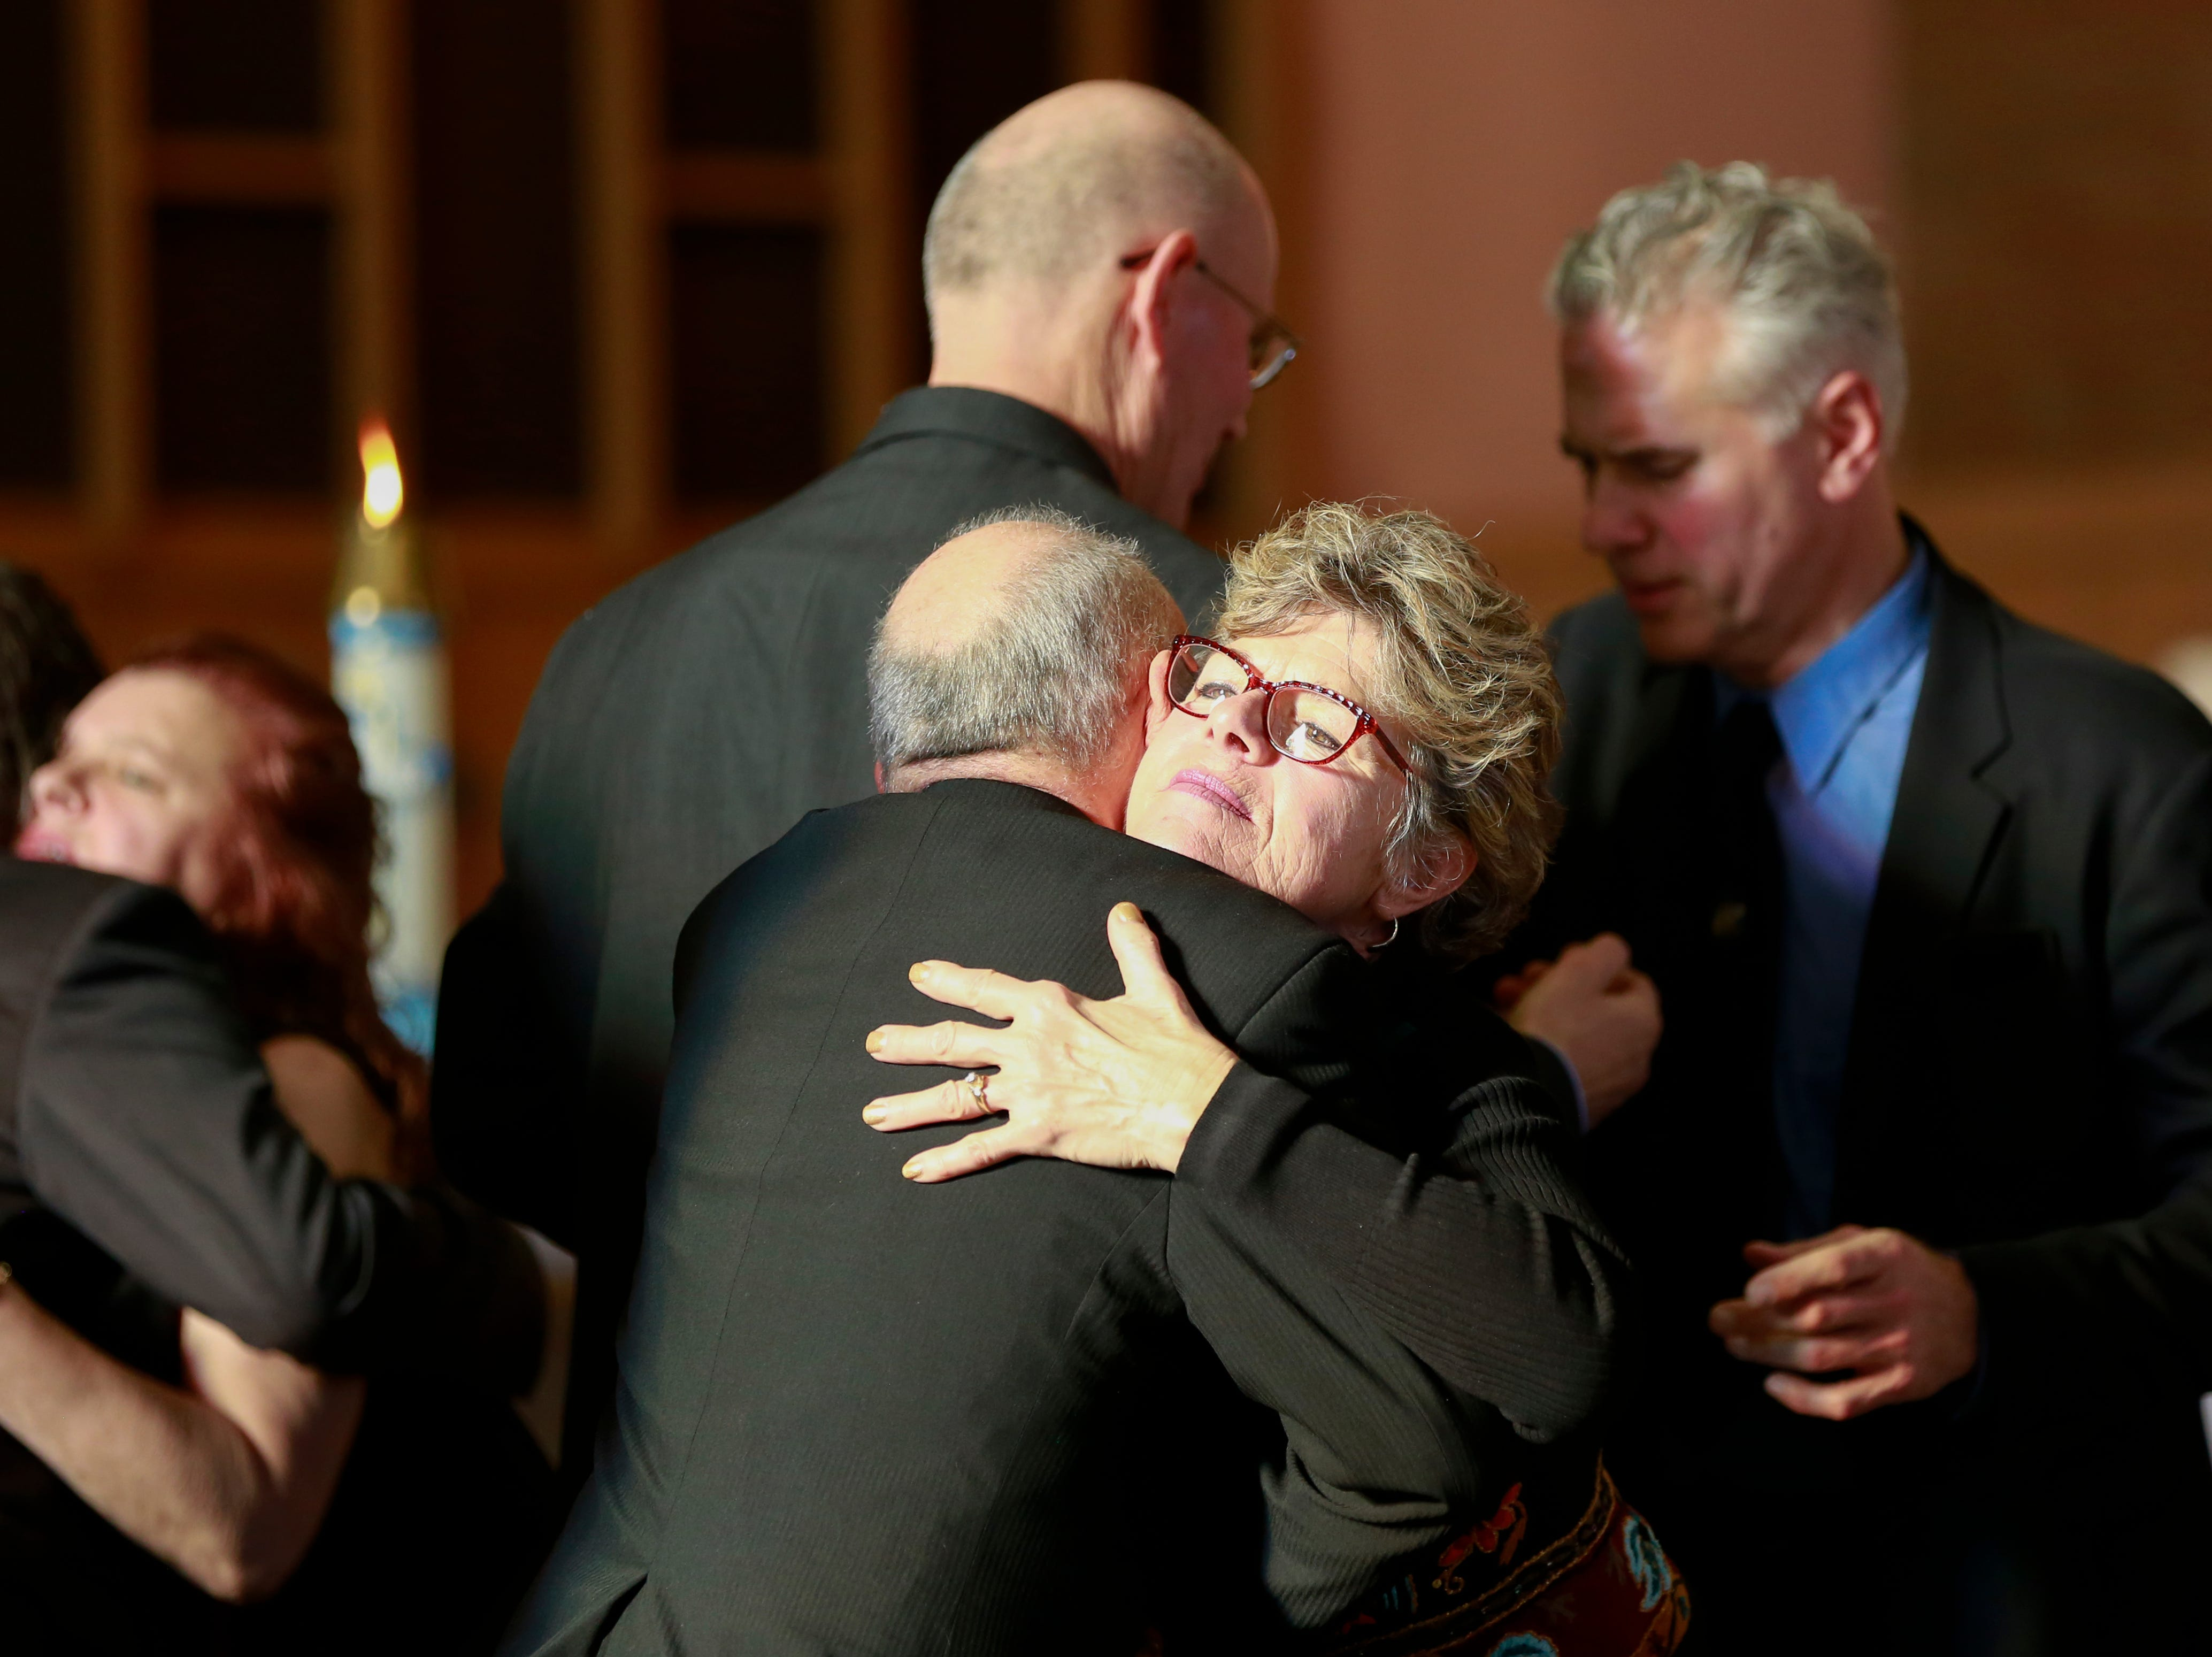 Family members embrace each other during former Sen. Walter Chilsen's funeral service Friday, Jan. 04, 2019, at Holy Name of Jesus Parish in Wausau, Wisc. T'xer Zhon Kha/USA TODAY NETWORK-Wisconsin